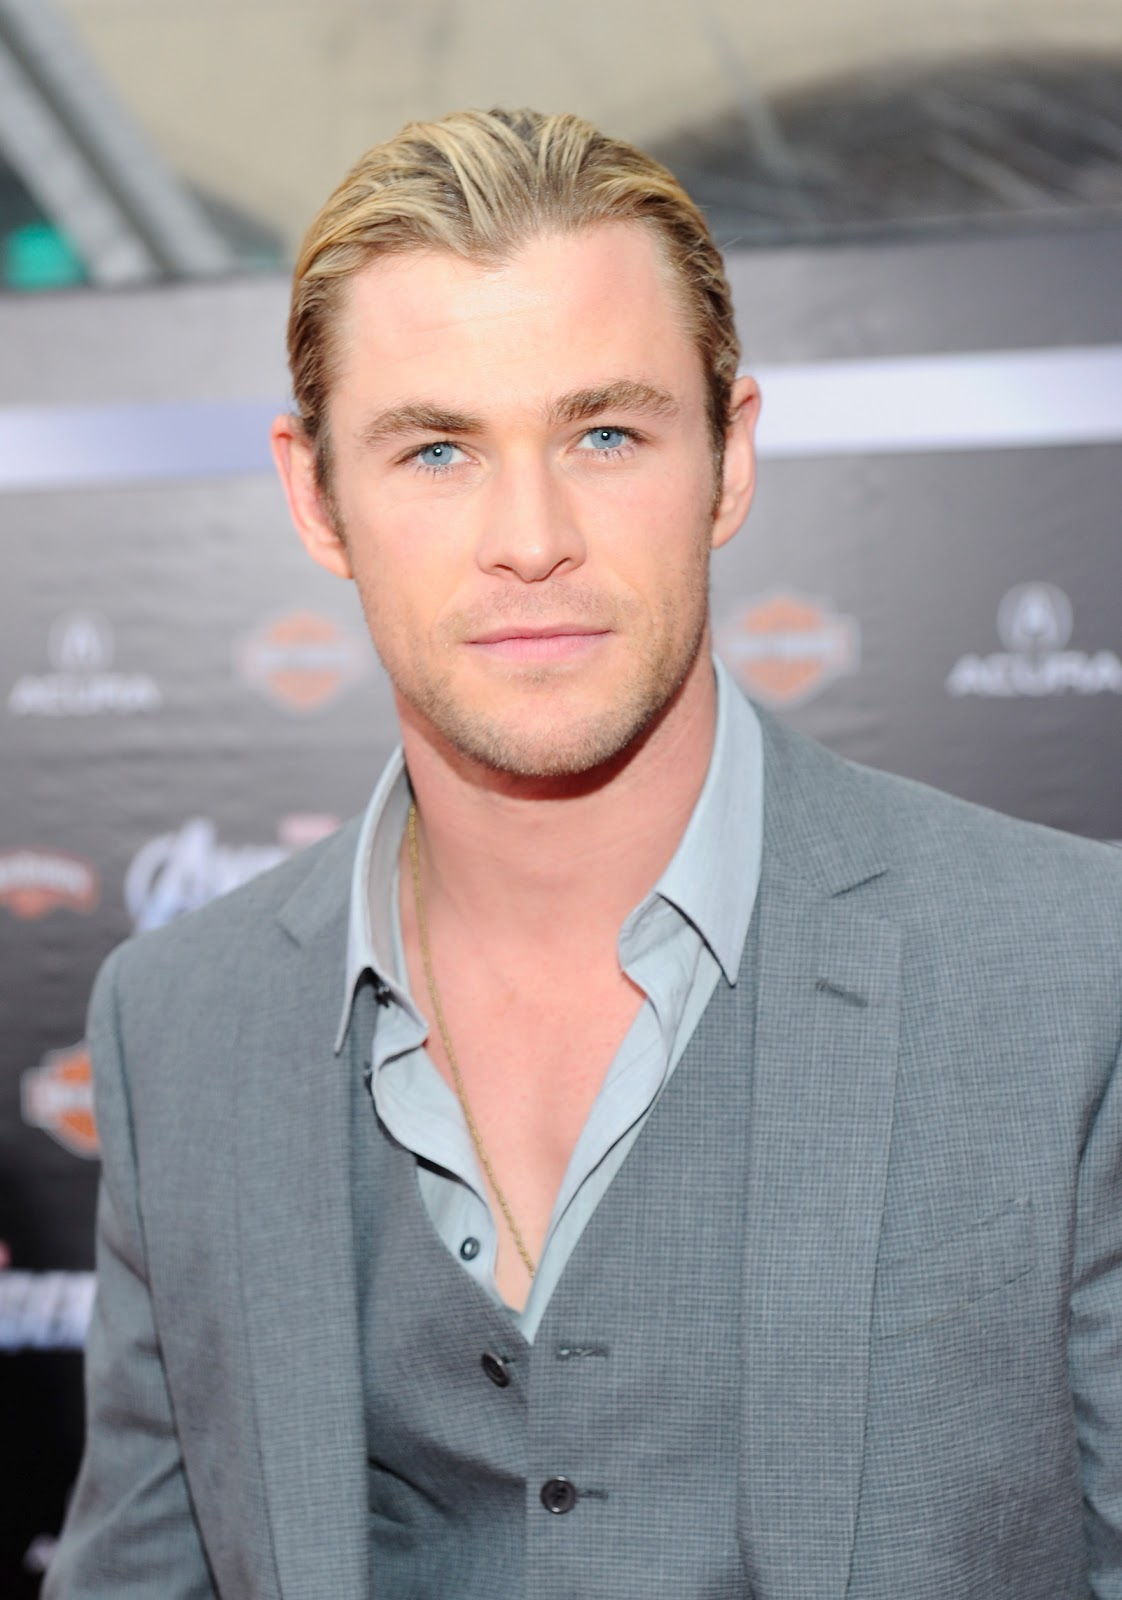 Are Chris Hemsworth Eyes Really Blue I'm chris hemsworth.